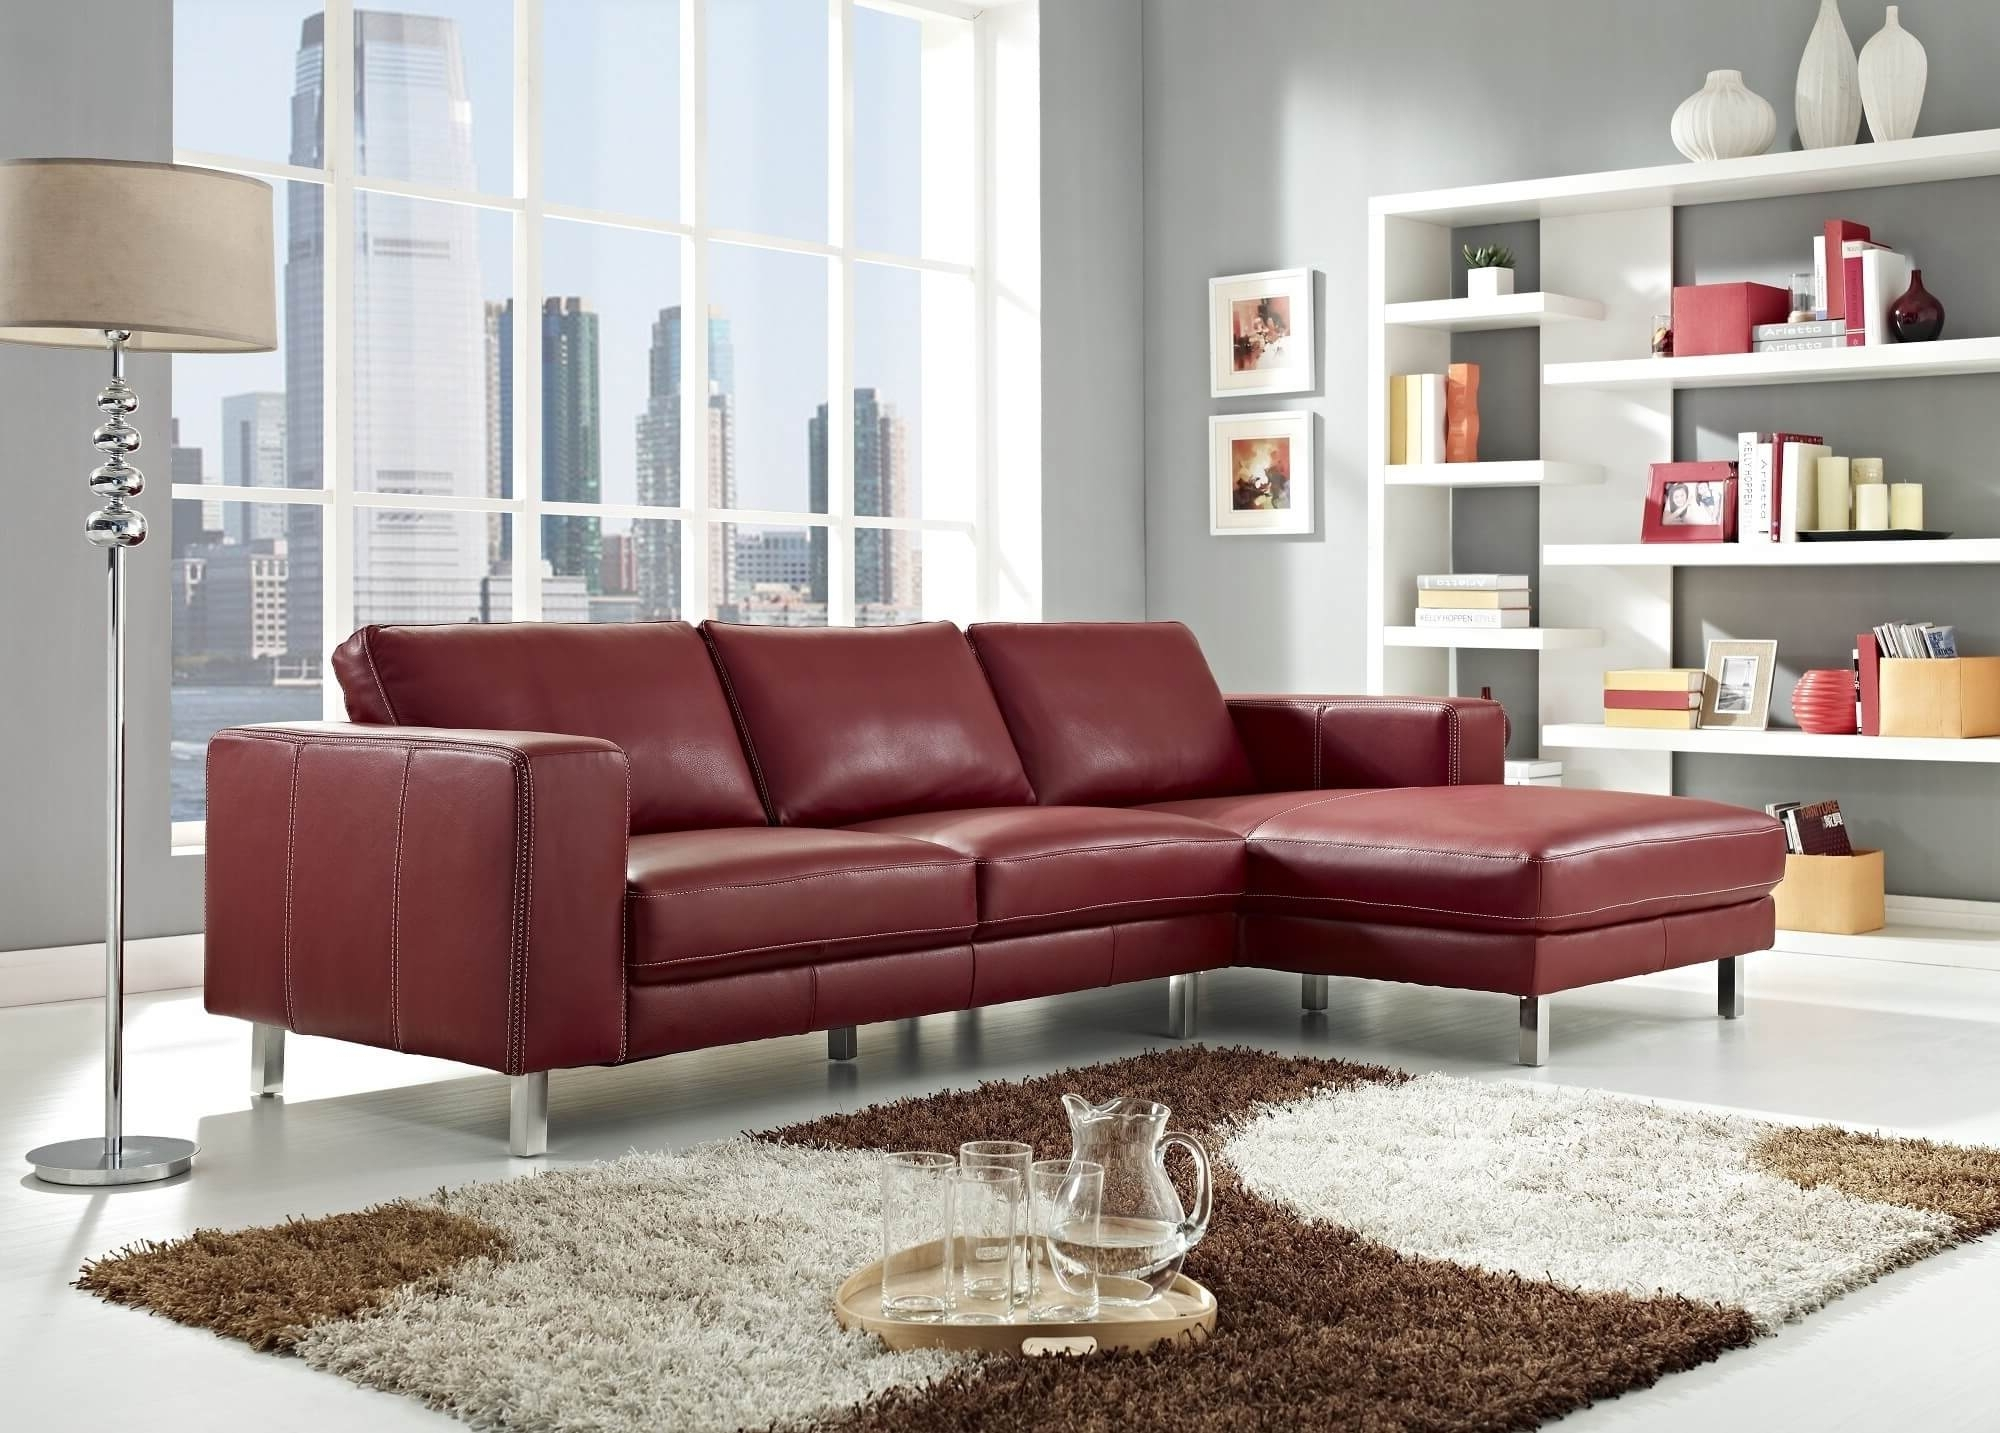 2018 Stylish Modern Red Sectional Sofas With Regard To Red Leather Sectionals With Chaise (View 6 of 15)